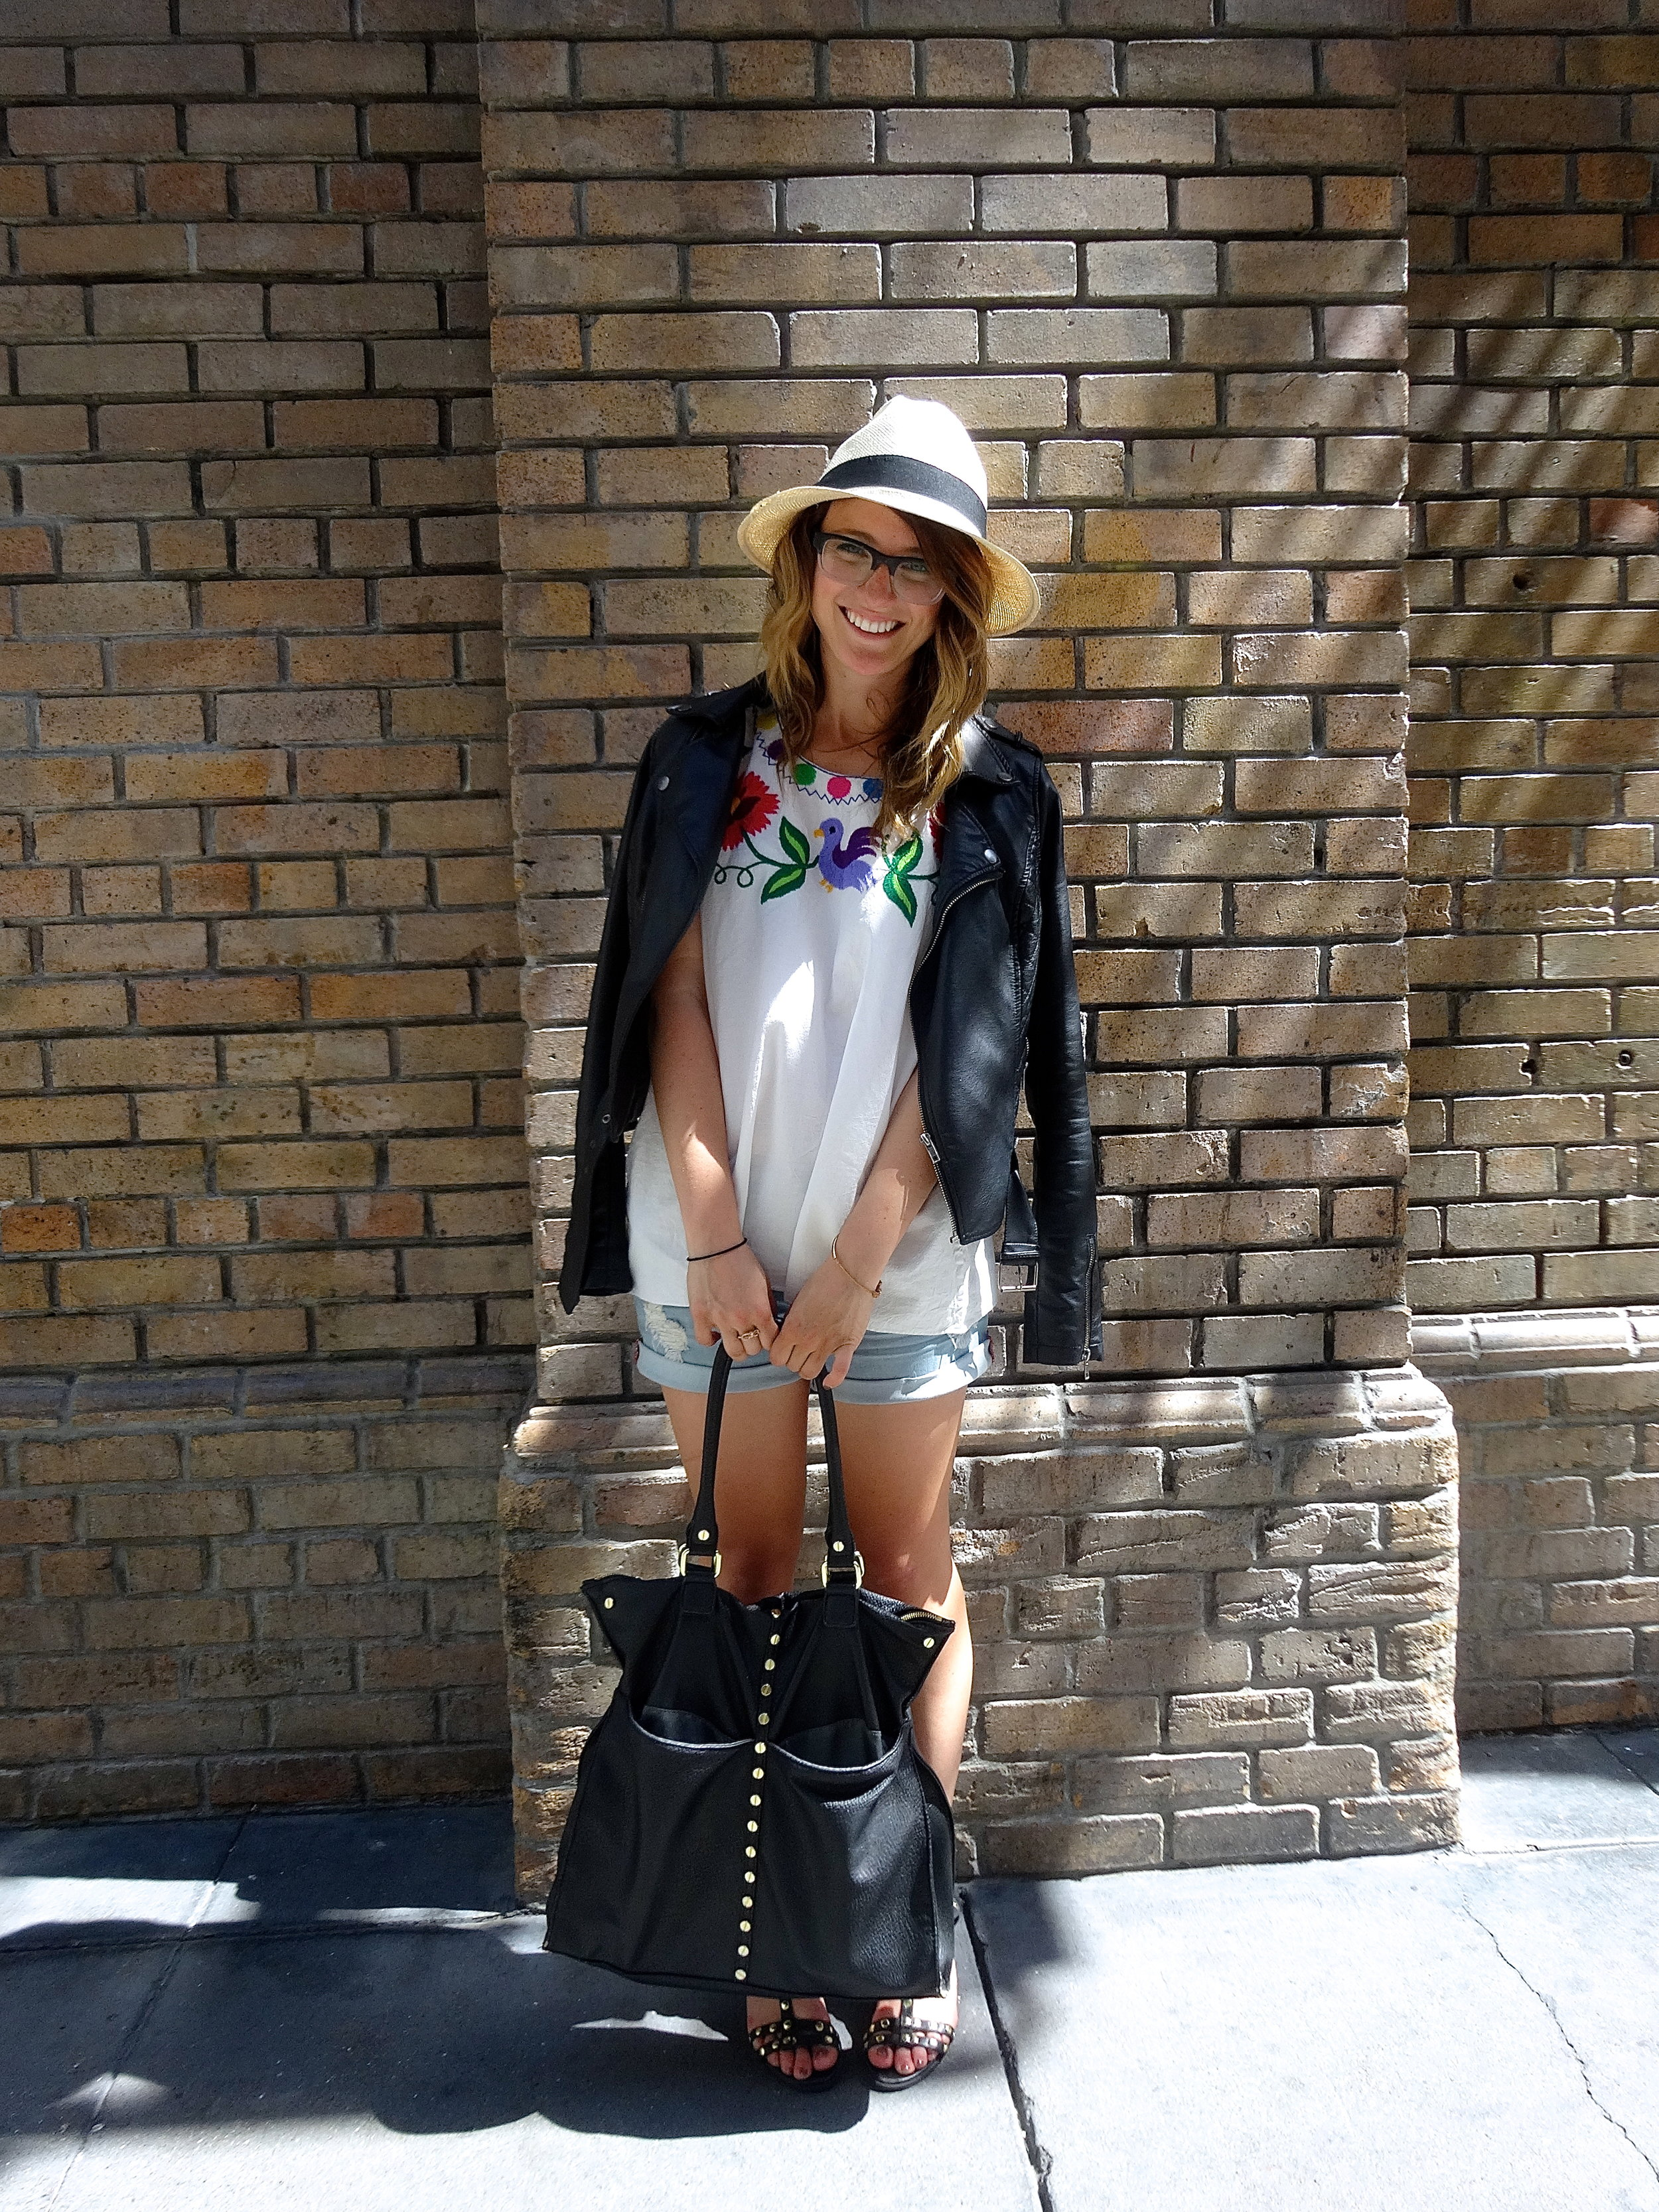 Blouse: Unknown via Crossroads Trading | Shorts: F21 | Shoes: H&M | Jacket: Bar III | Hat: Marc by Marc Jacobs